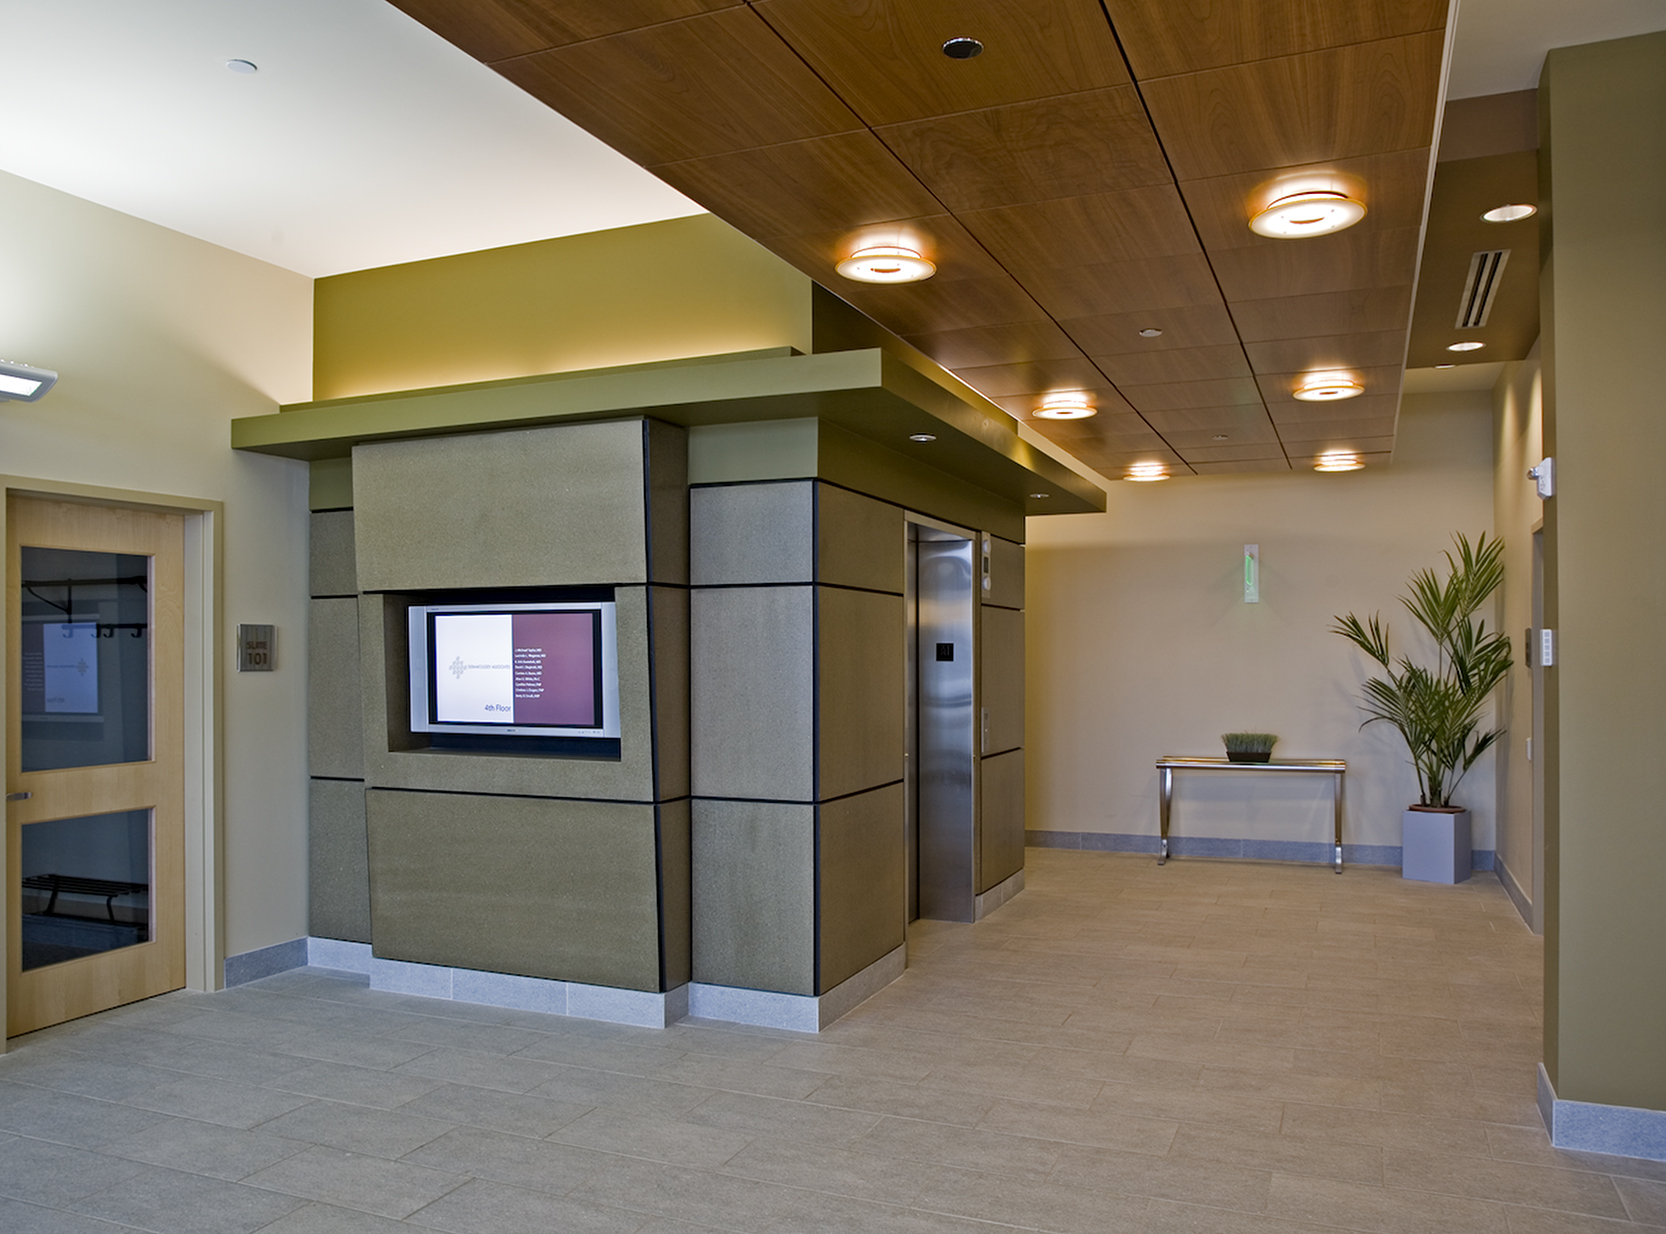 The lobby is finished with green and recycled materials.